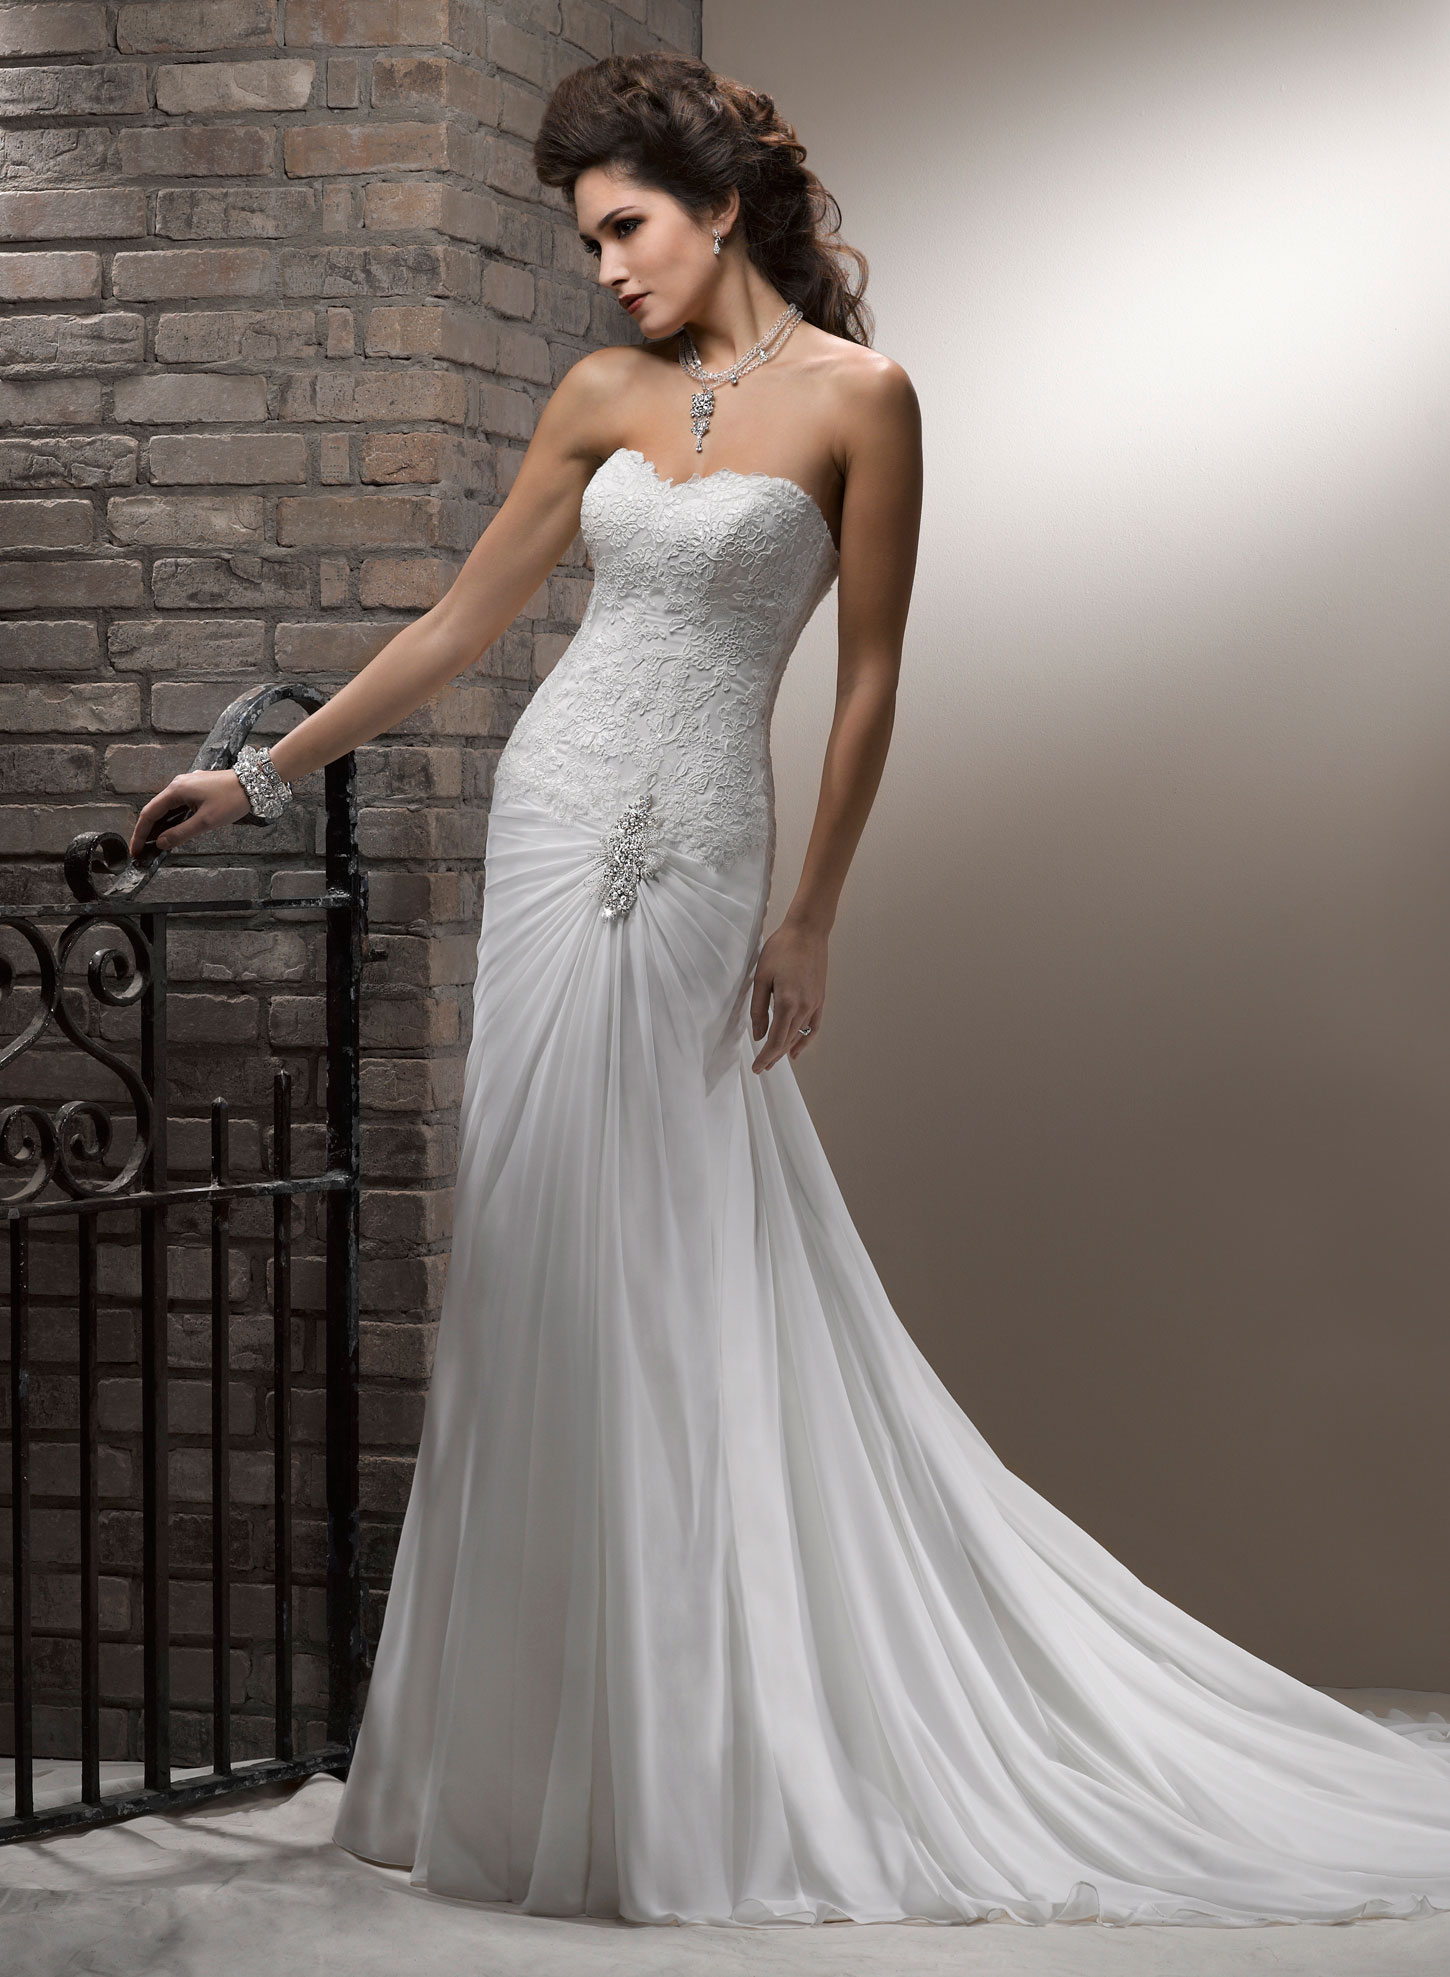 wedding planner malta - amazing wedding dress